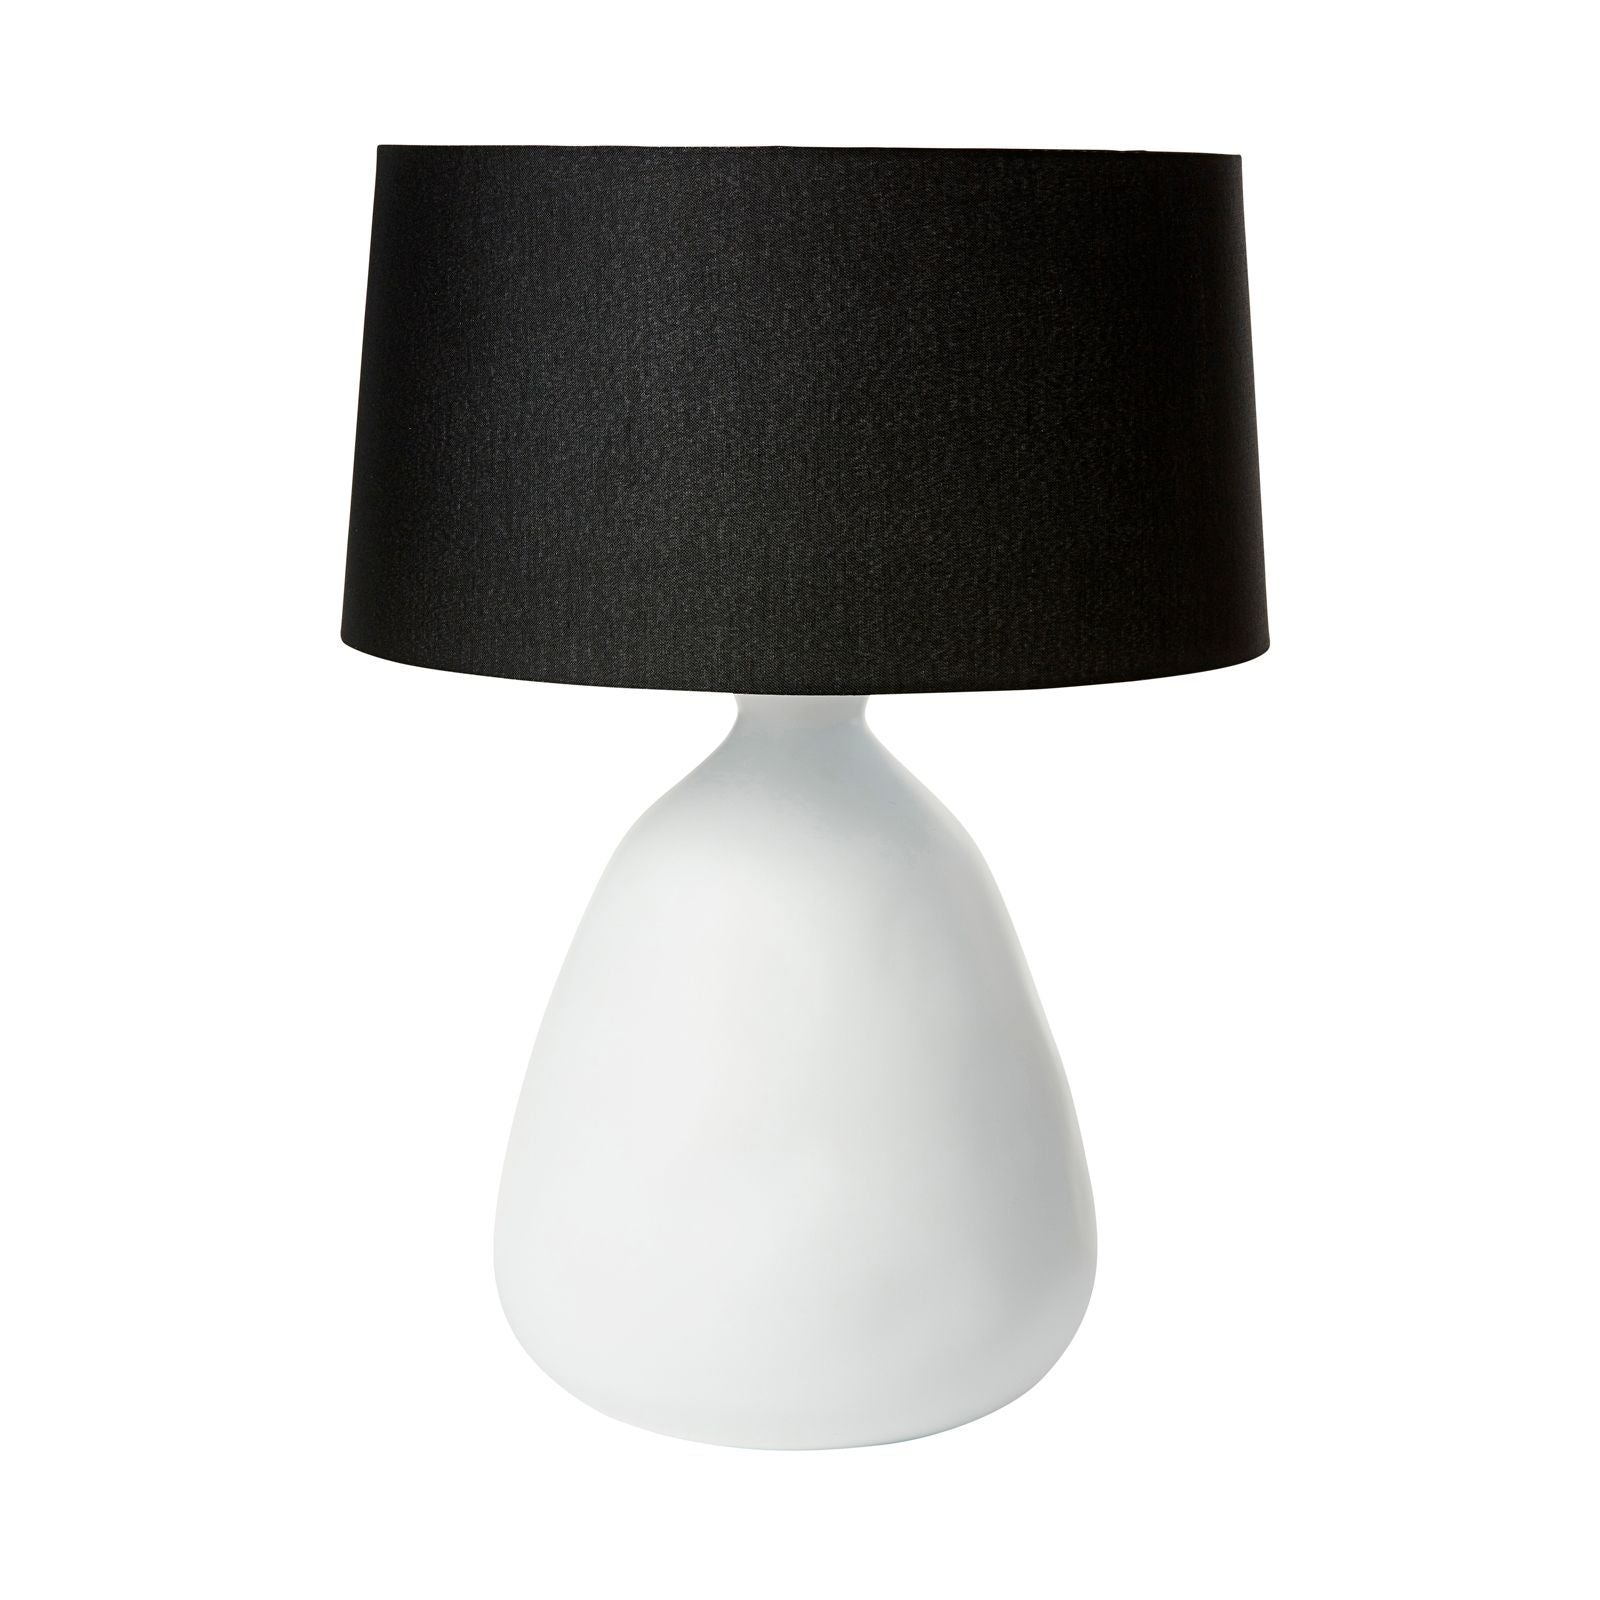 Organic Lamp with Black Shade